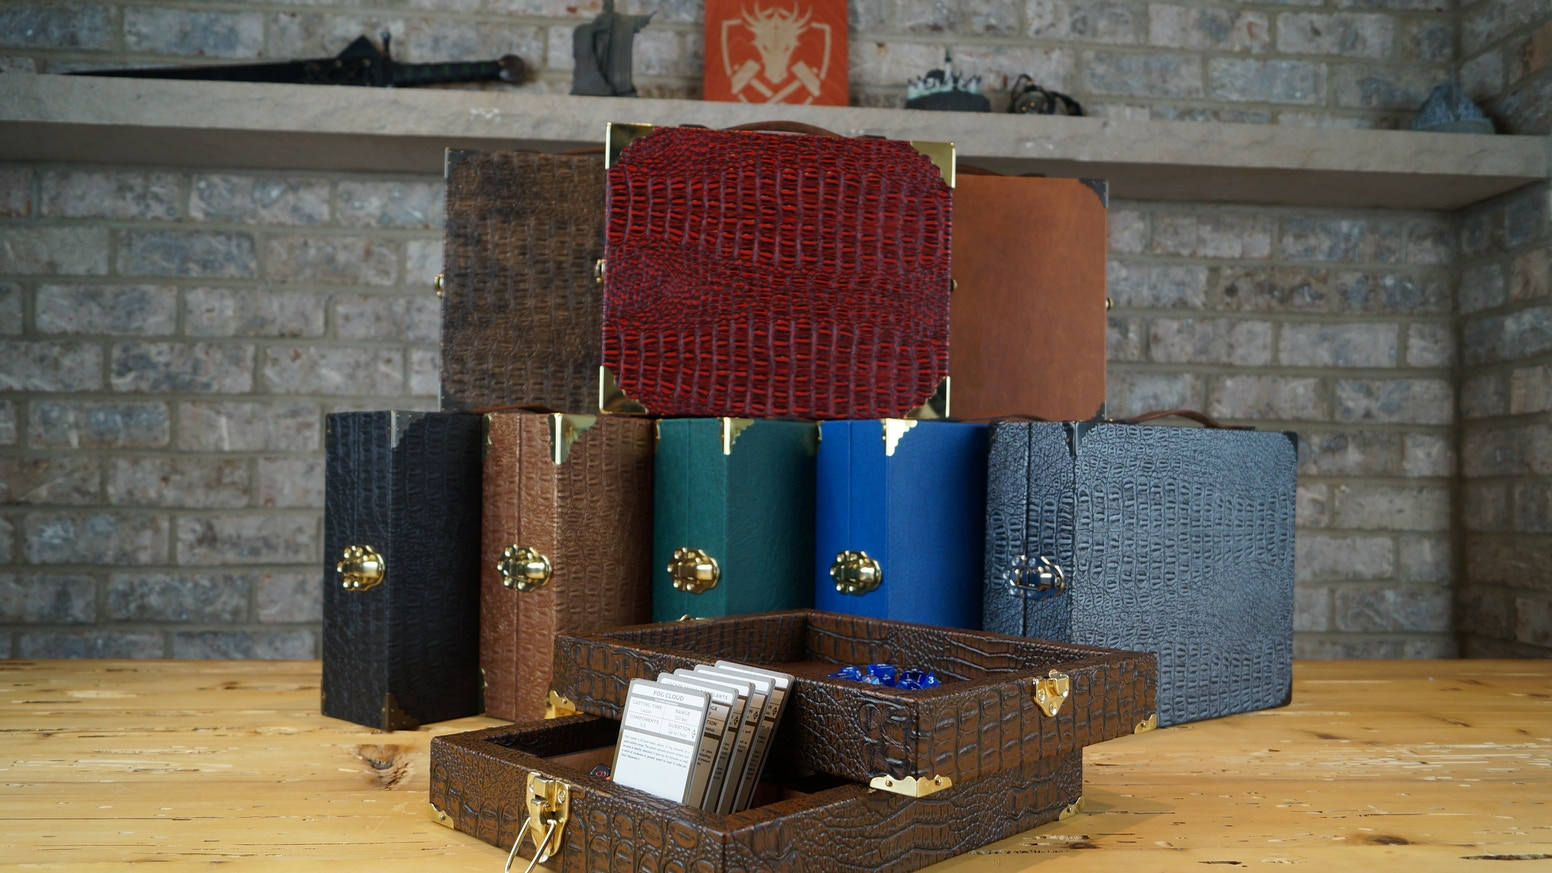 The Adventurer's Kit is a beautiful carrying case designed to fit everything an RPG player would need. And it doubles as a play area!